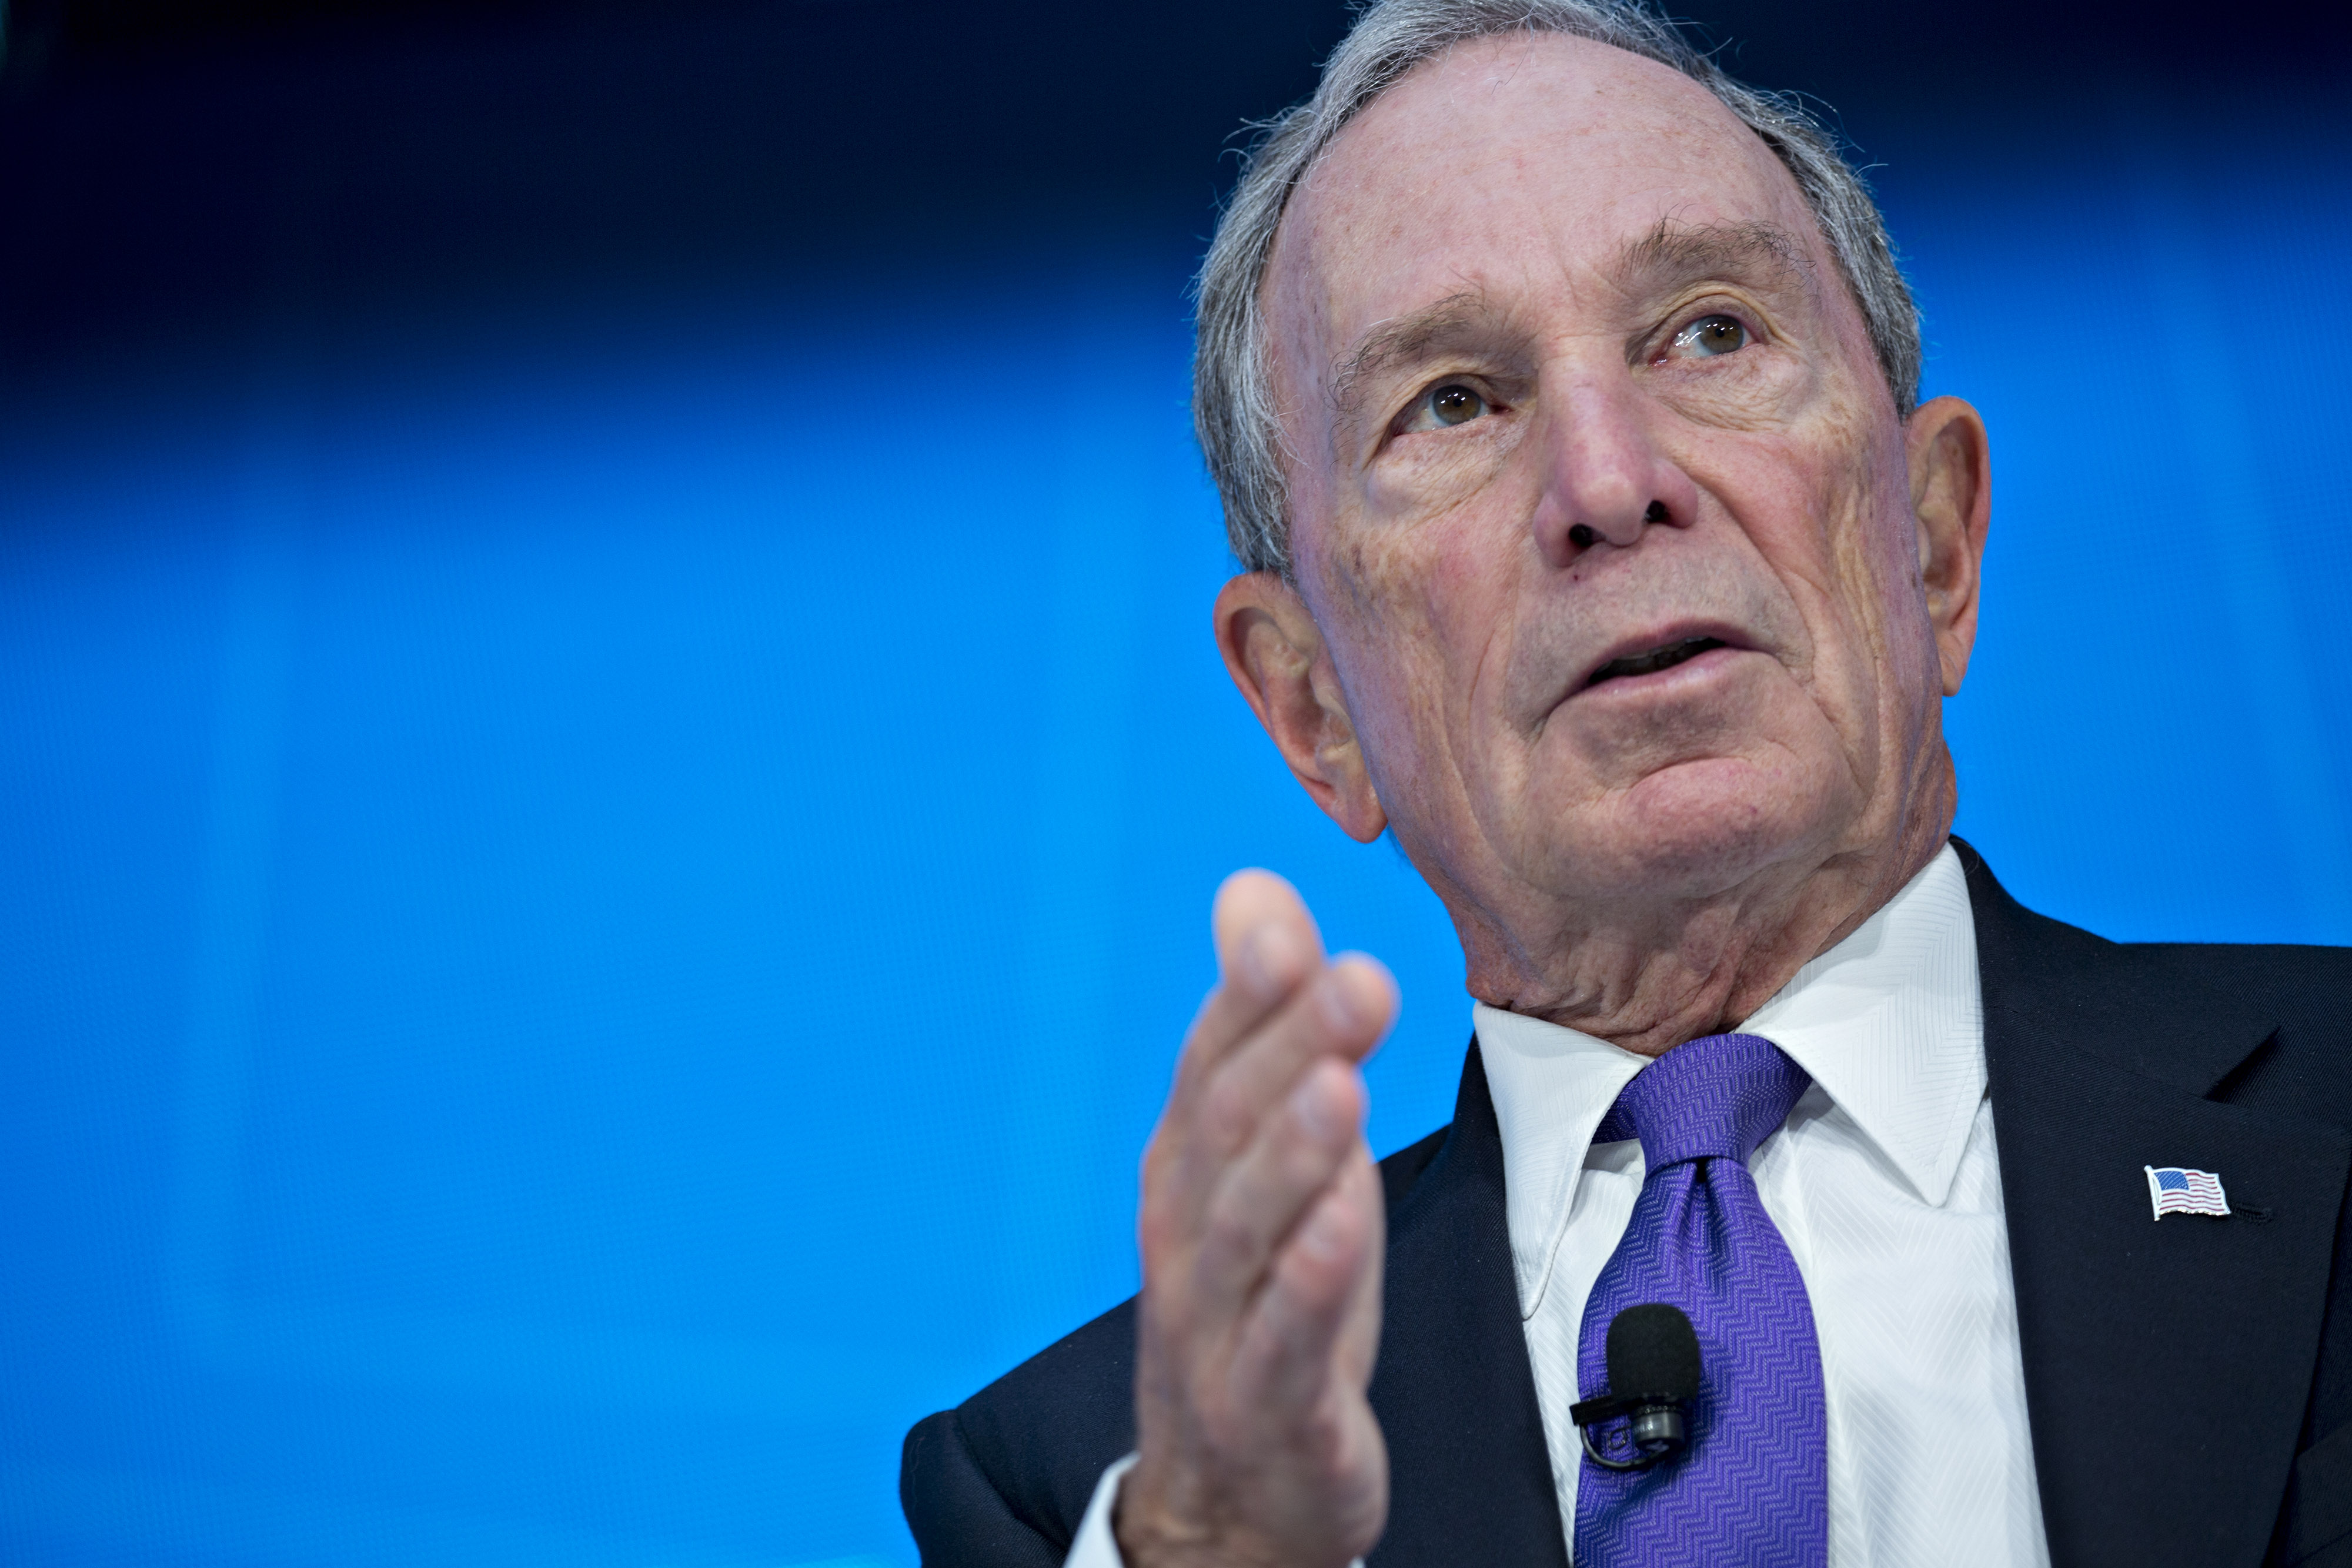 Michael Bloomberg committed $4.5M to the Paris Climate Agreement